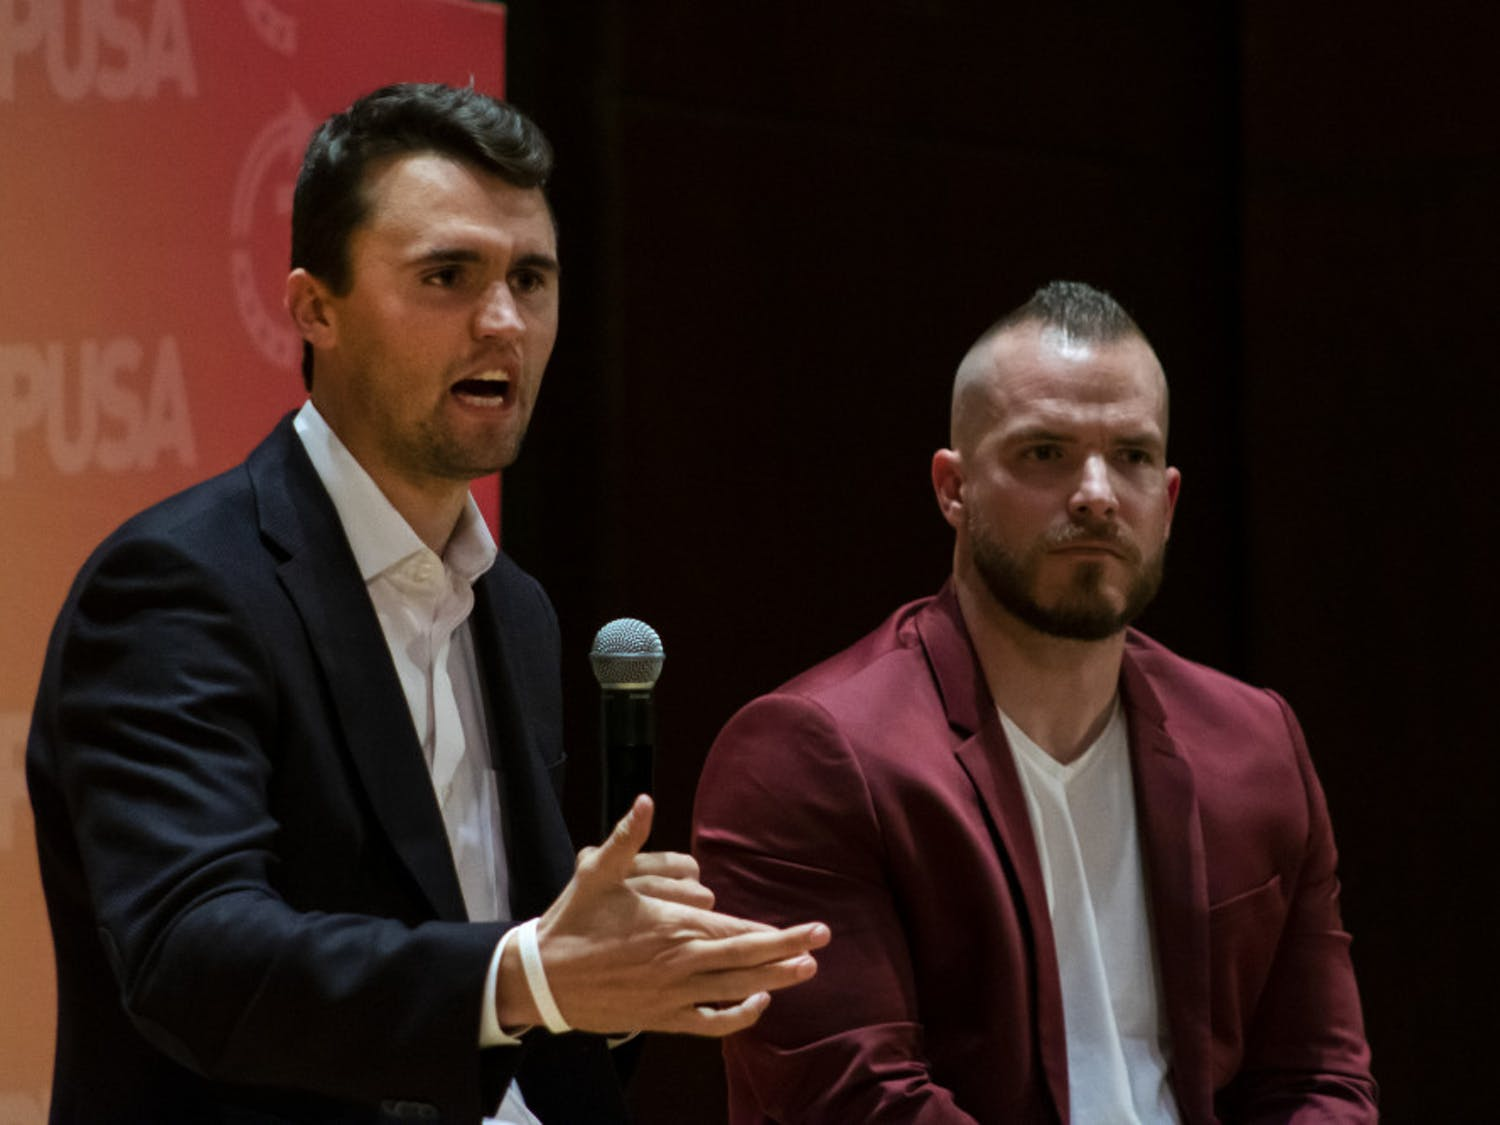 Charlie Kirk, leader of Turning Point USA, and Graham Allen, political speaker, answer questions from the audience Tuesday night in University Auditorium. Many of Kirk's answers were met with a mixture of cheers and boos from the crowd.